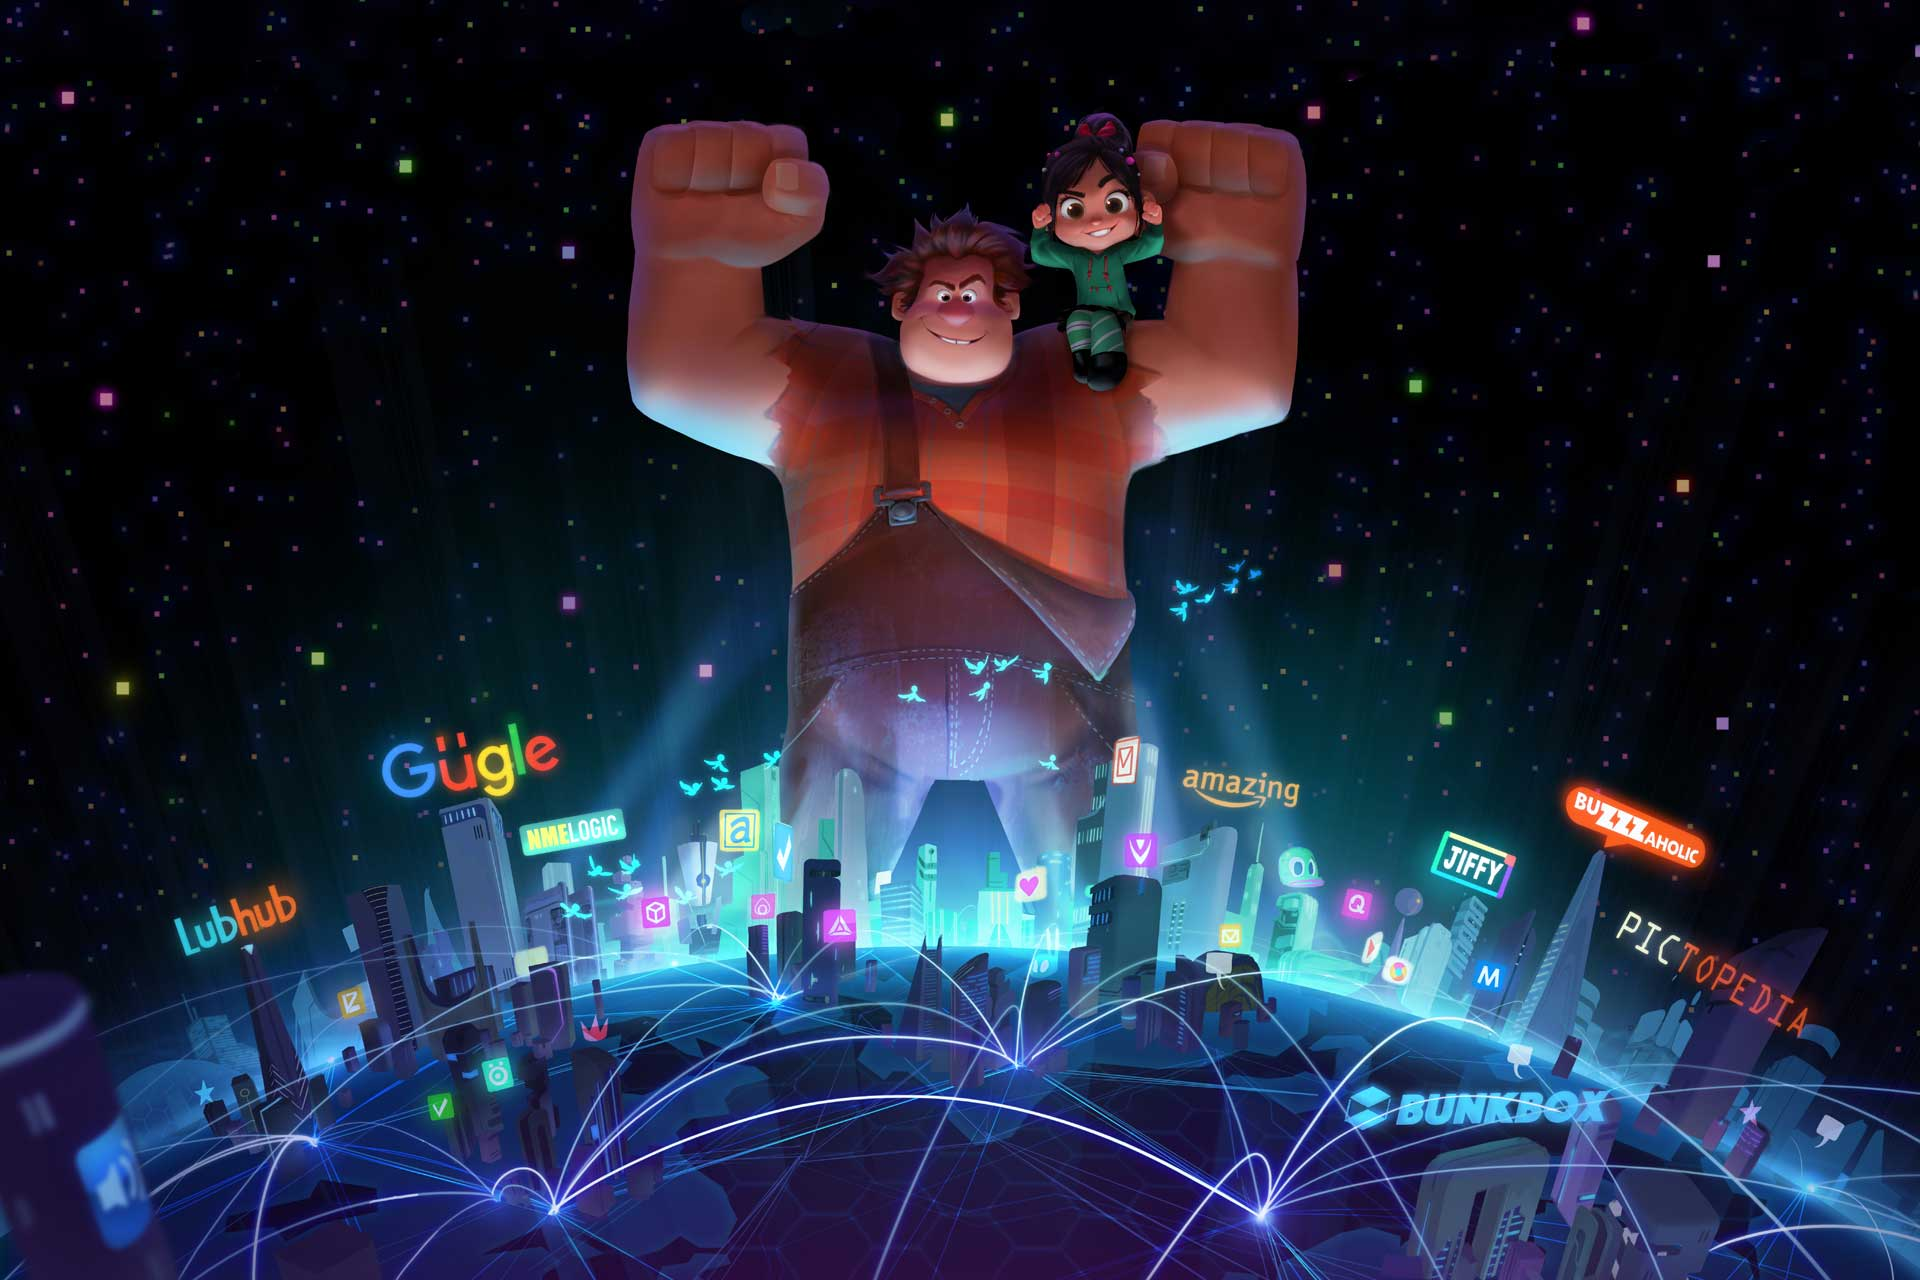 WRECKING THE INTERNET — Wreck-It Ralph is heading back to the big screen—this time he's wrecking the internet. John C. Reilly returns as the voice of the bad-guy-turned-good, and Sarah Silverman once again lends her voice to the girl with the game-winning glitch, Vanellope von Schweetz. Directed by Rich Moore and Phil Johnston, and produced by Clark Spencer, the untitled sequel hits theaters on March 9, 2018. ©2016 Disney. All Rights Reserved.